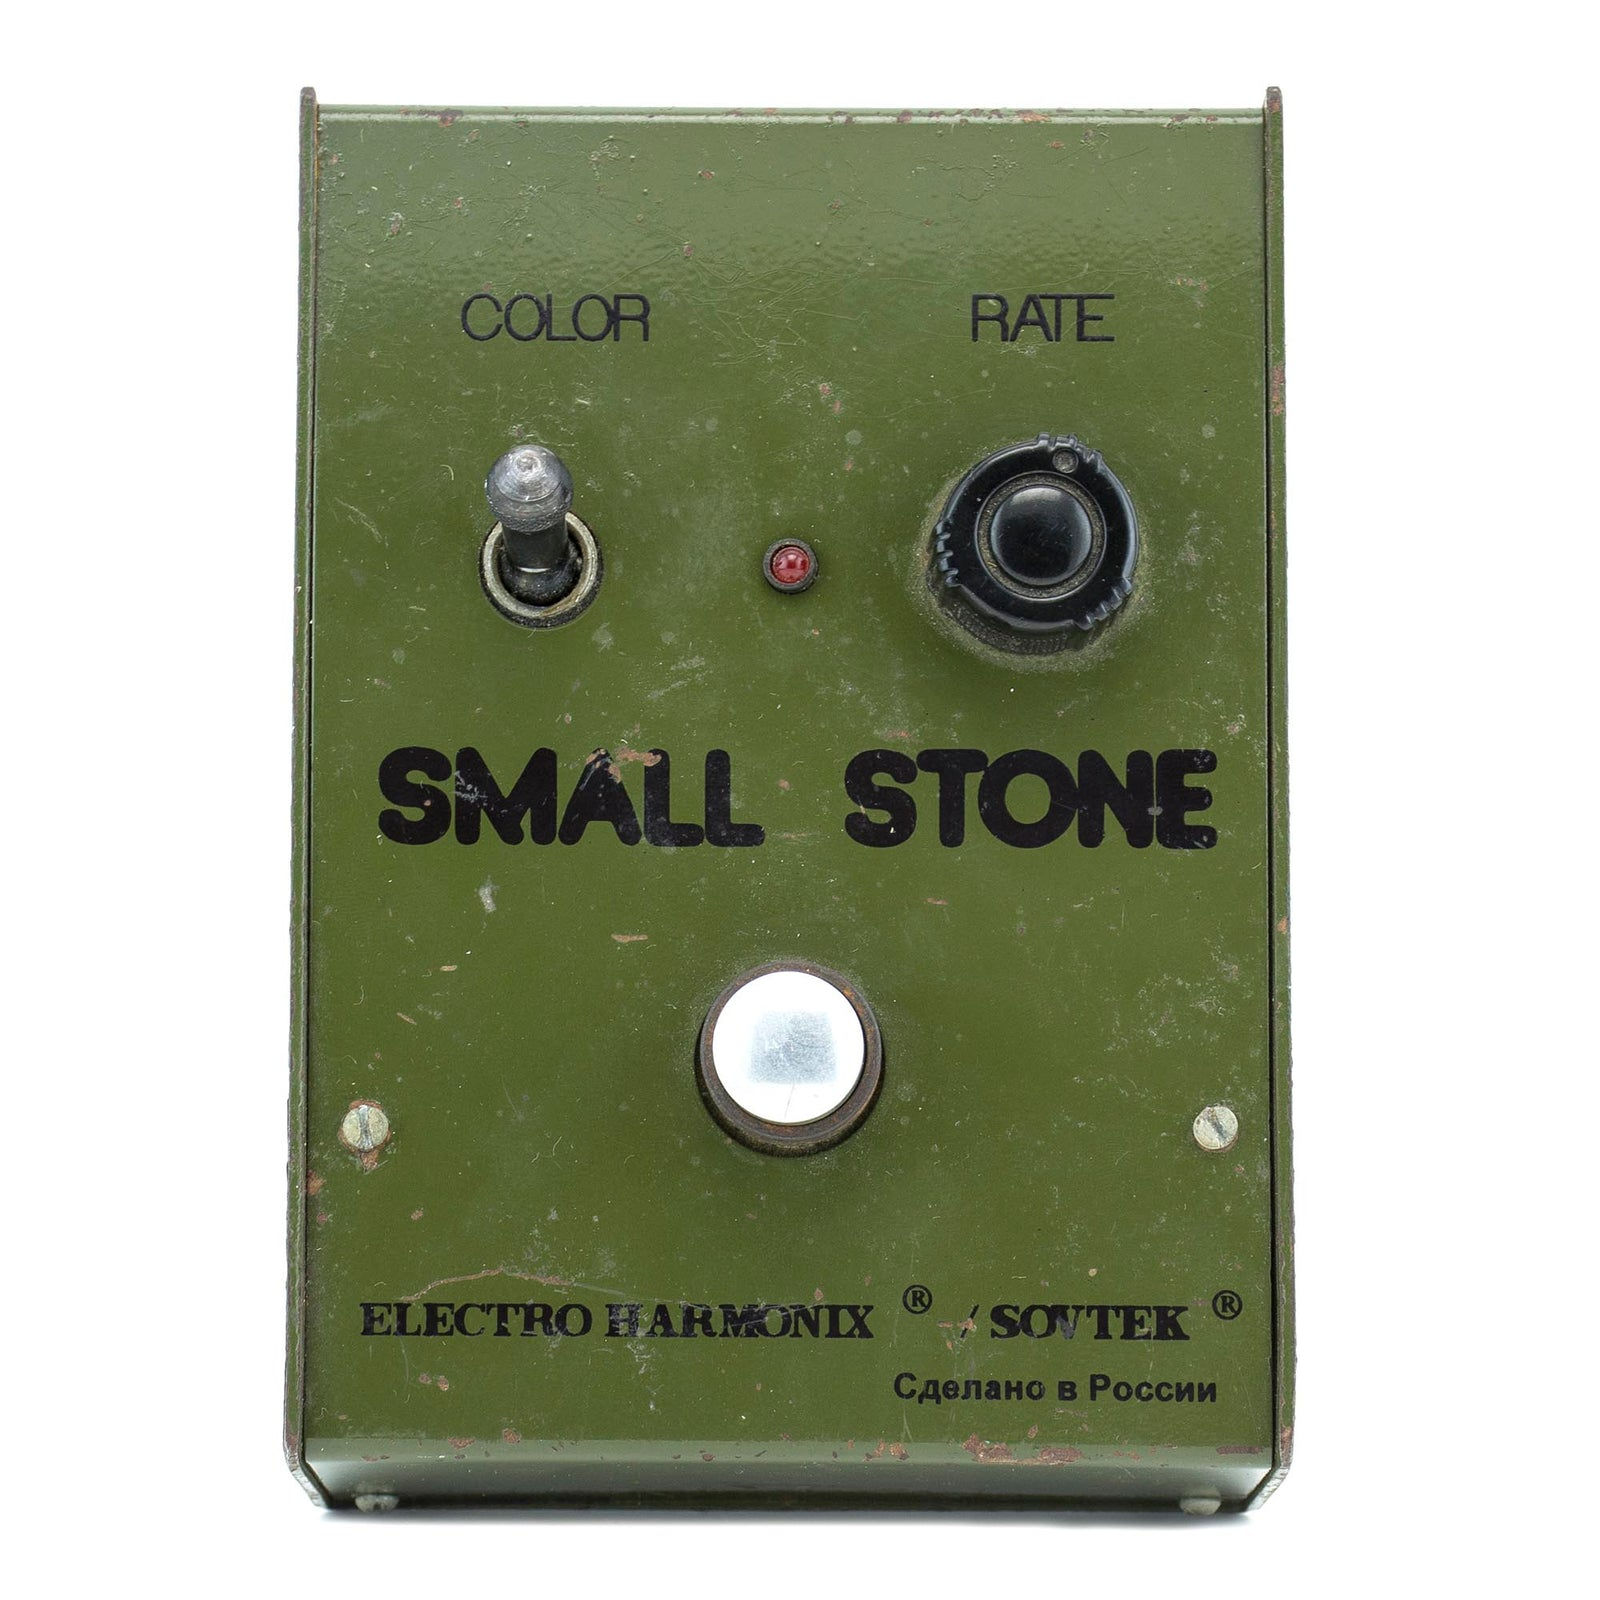 Electro Harmonix Sovtek Small Stone Phase - Green - Used